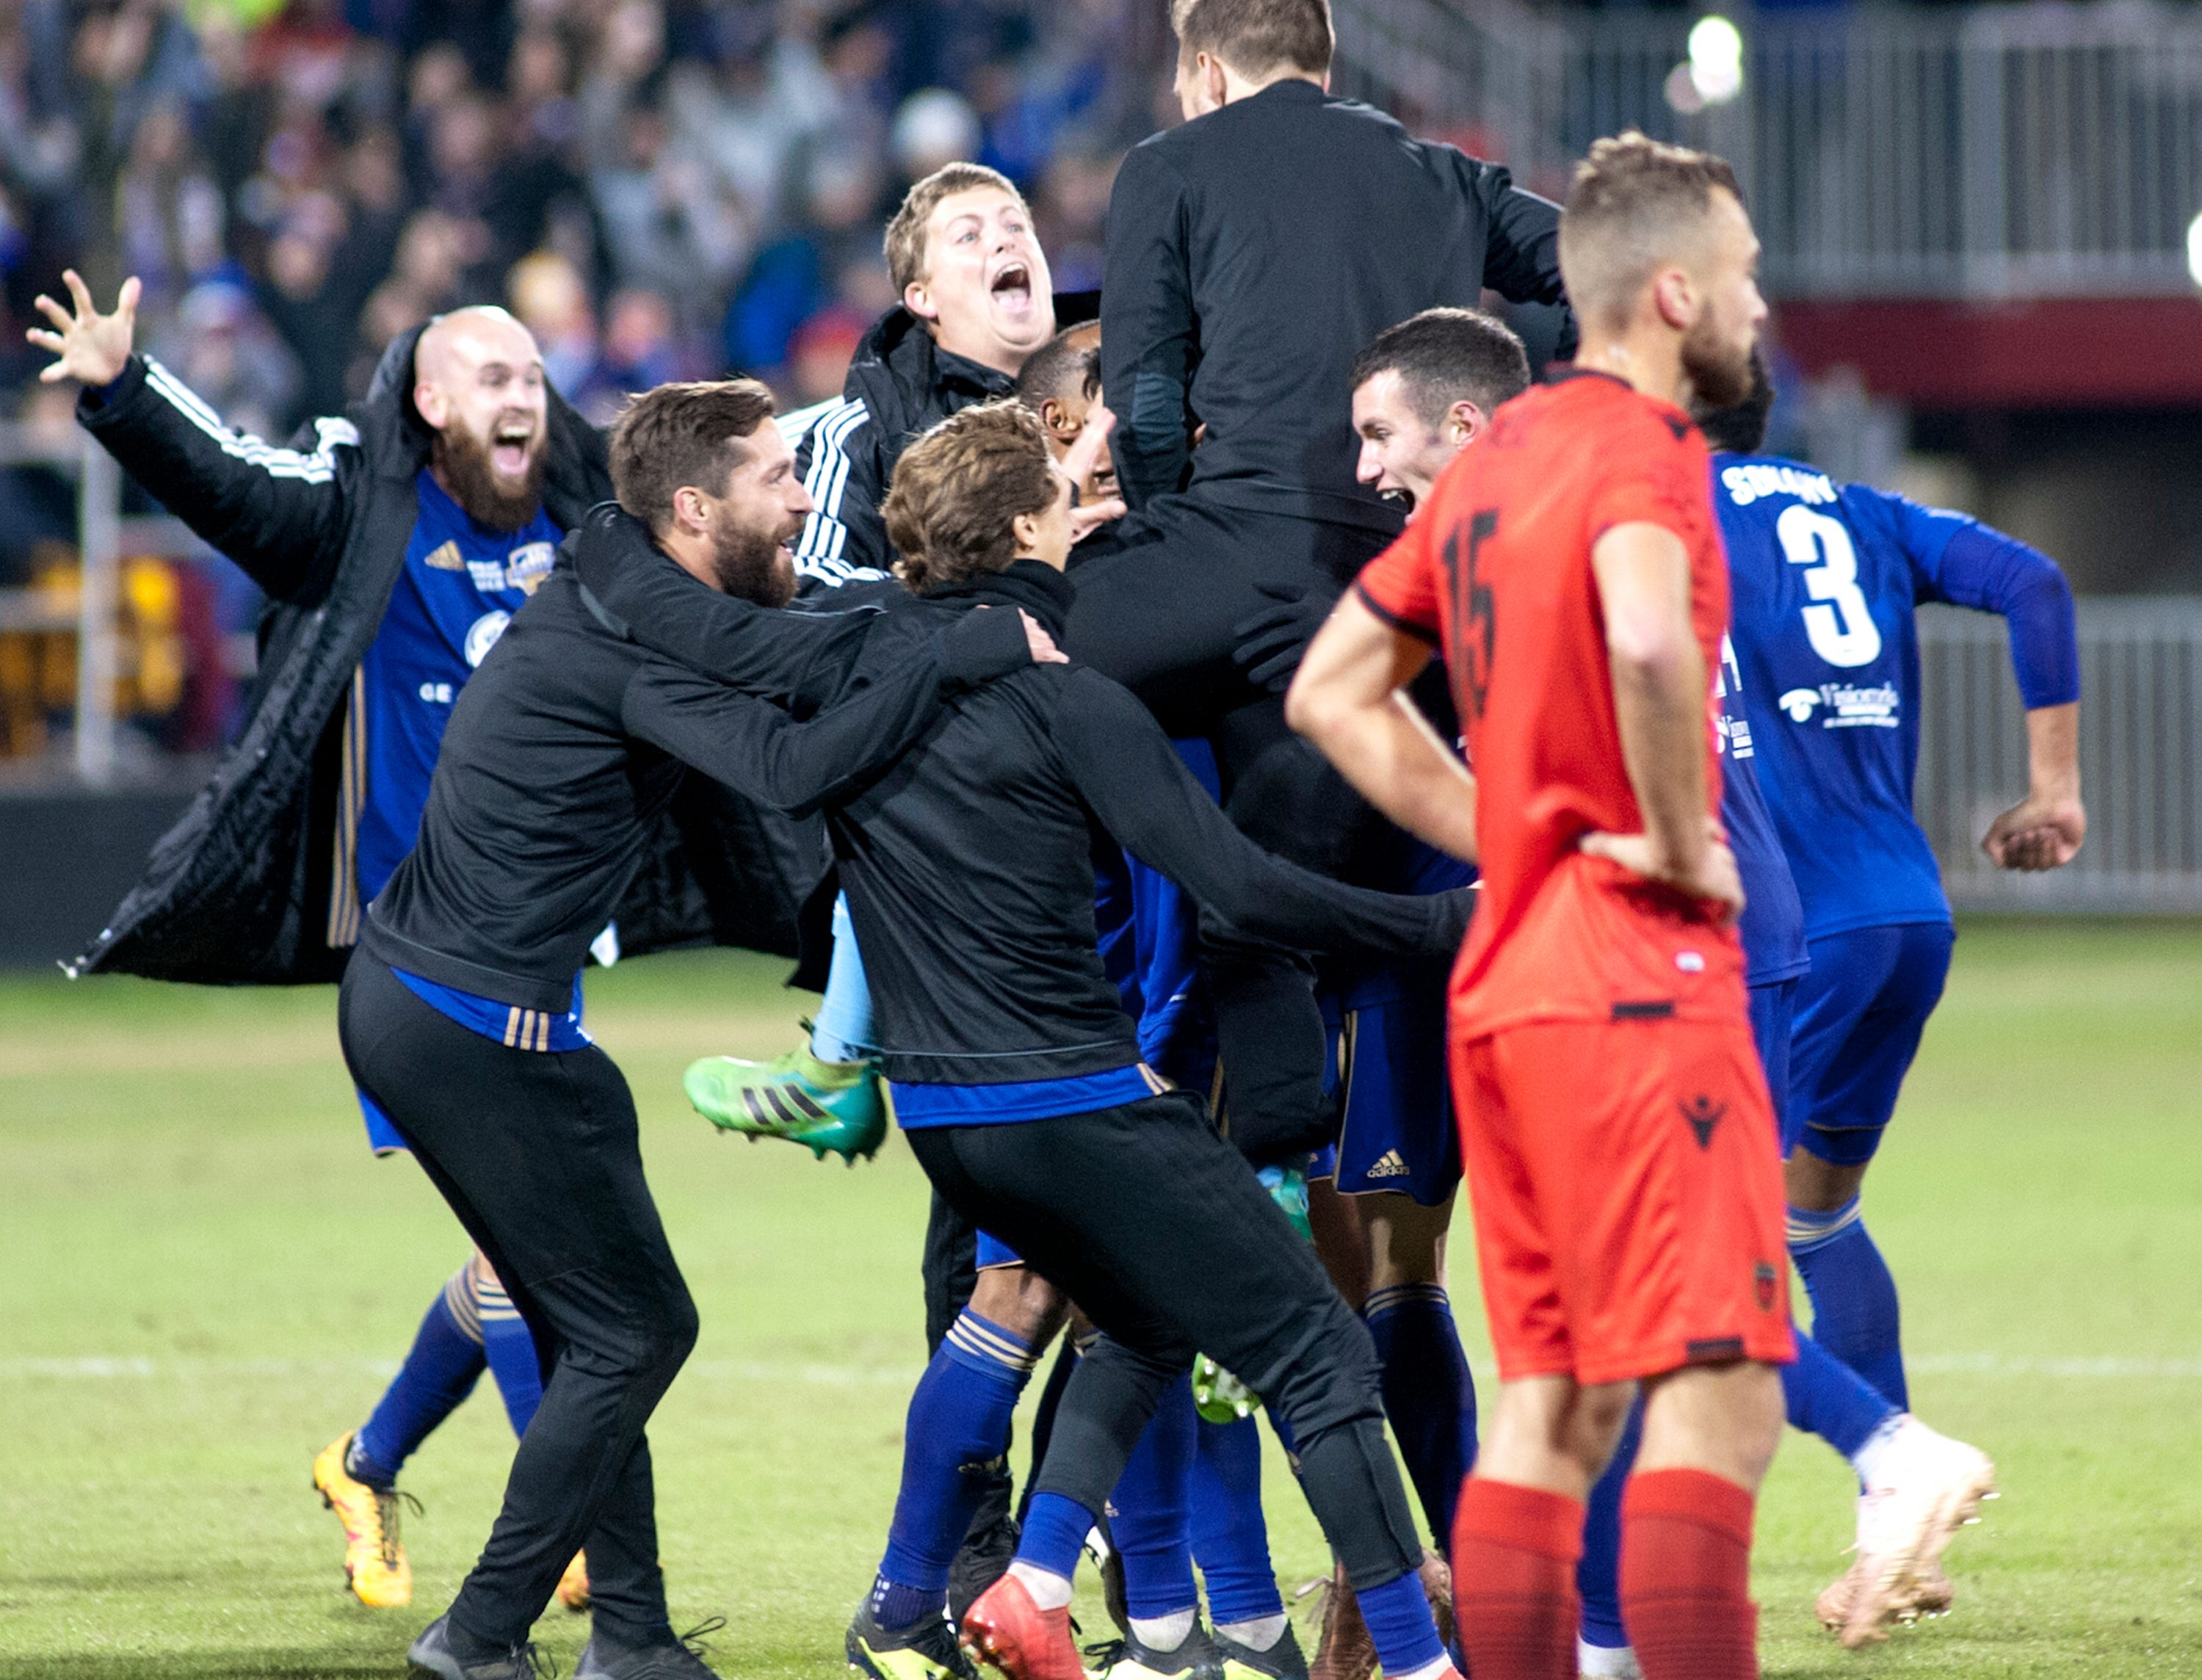 Phoenix Rising FC defender Joseph Farrell reacts to his team's loss as as Louisville City FC celebrates their 1-0 victory in the 2018 USL Cup.November 08, 2018